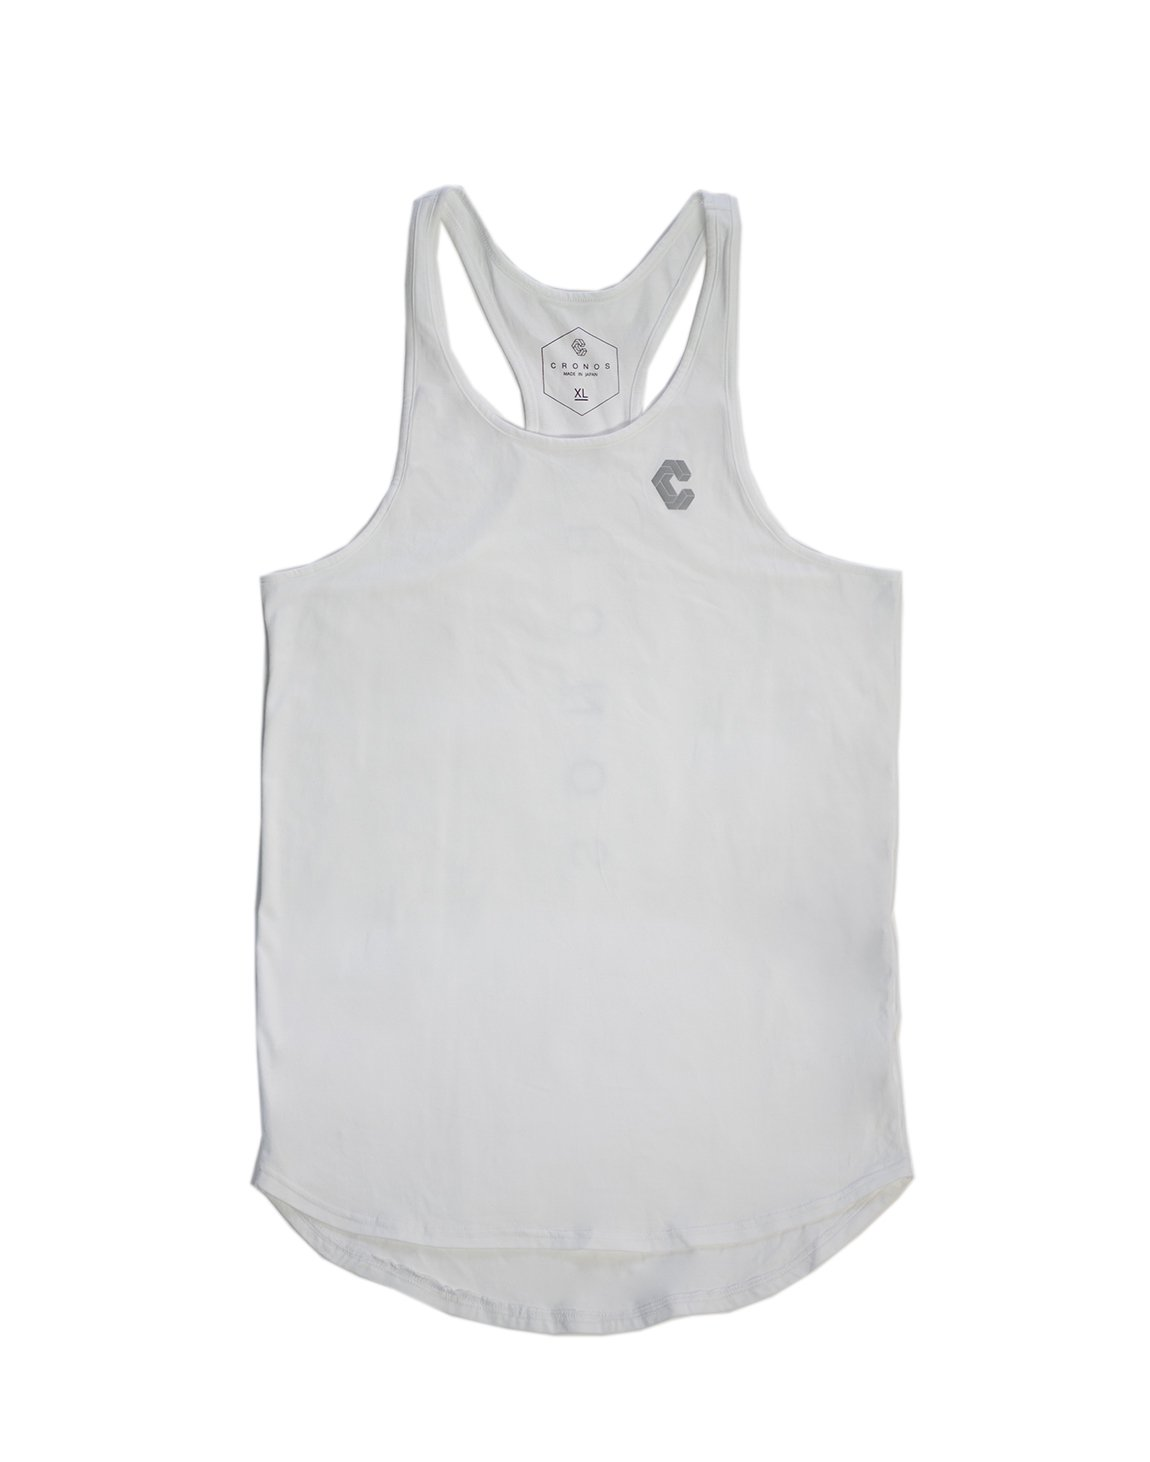 <img class='new_mark_img1' src='https://img.shop-pro.jp/img/new/icons1.gif' style='border:none;display:inline;margin:0px;padding:0px;width:auto;' />CRONOS BACK LOG TANK TOP WHITE